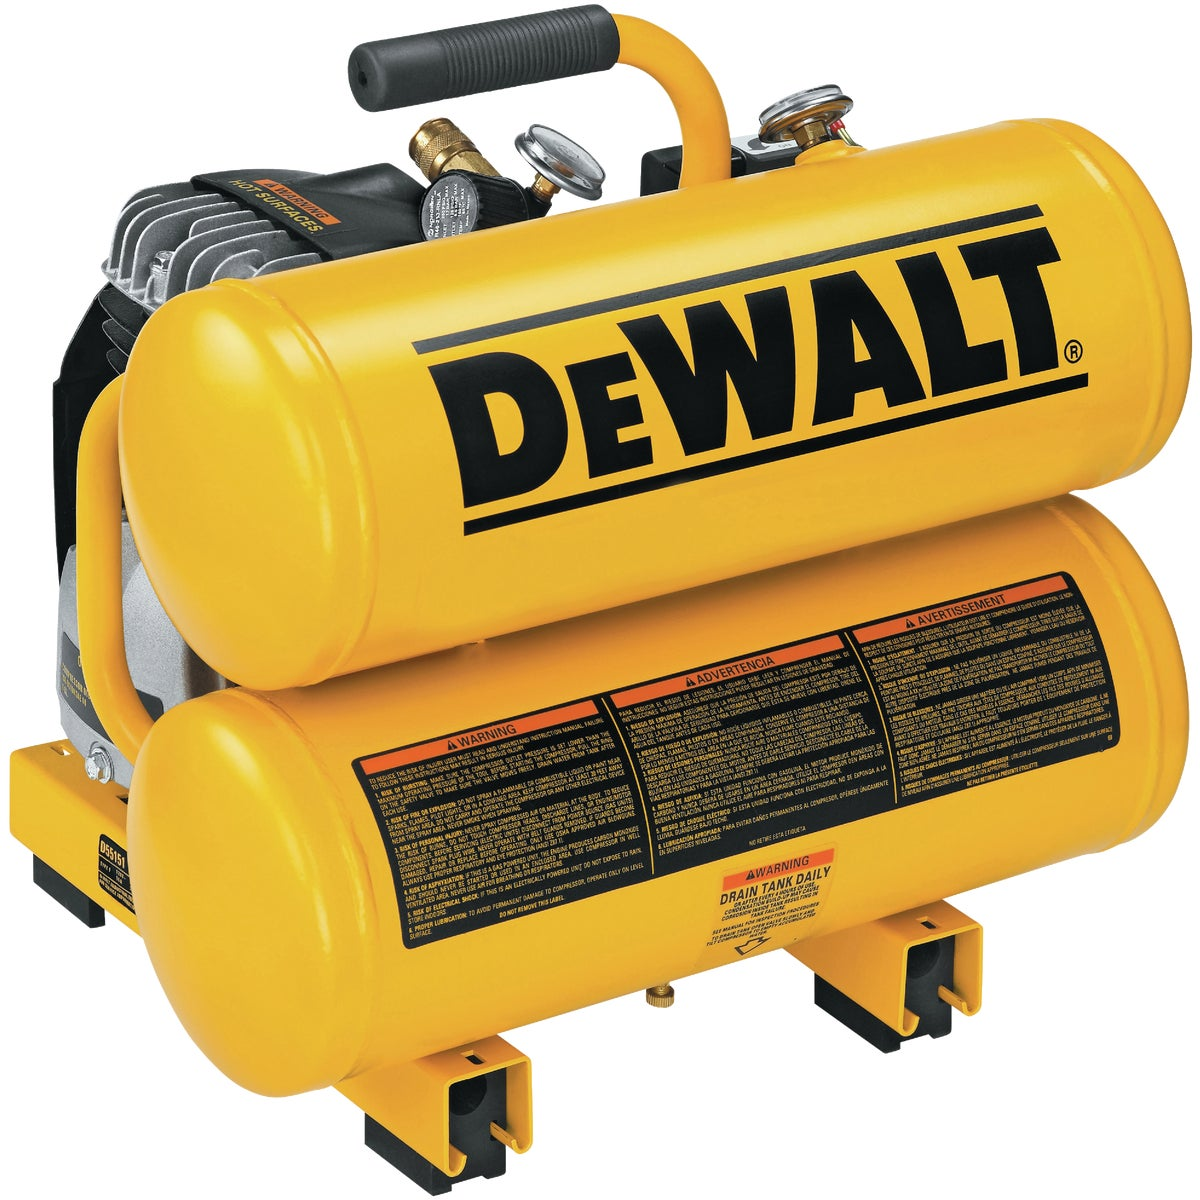 2HP 4GAL AIR COMPRESSOR - D55151 by DeWalt